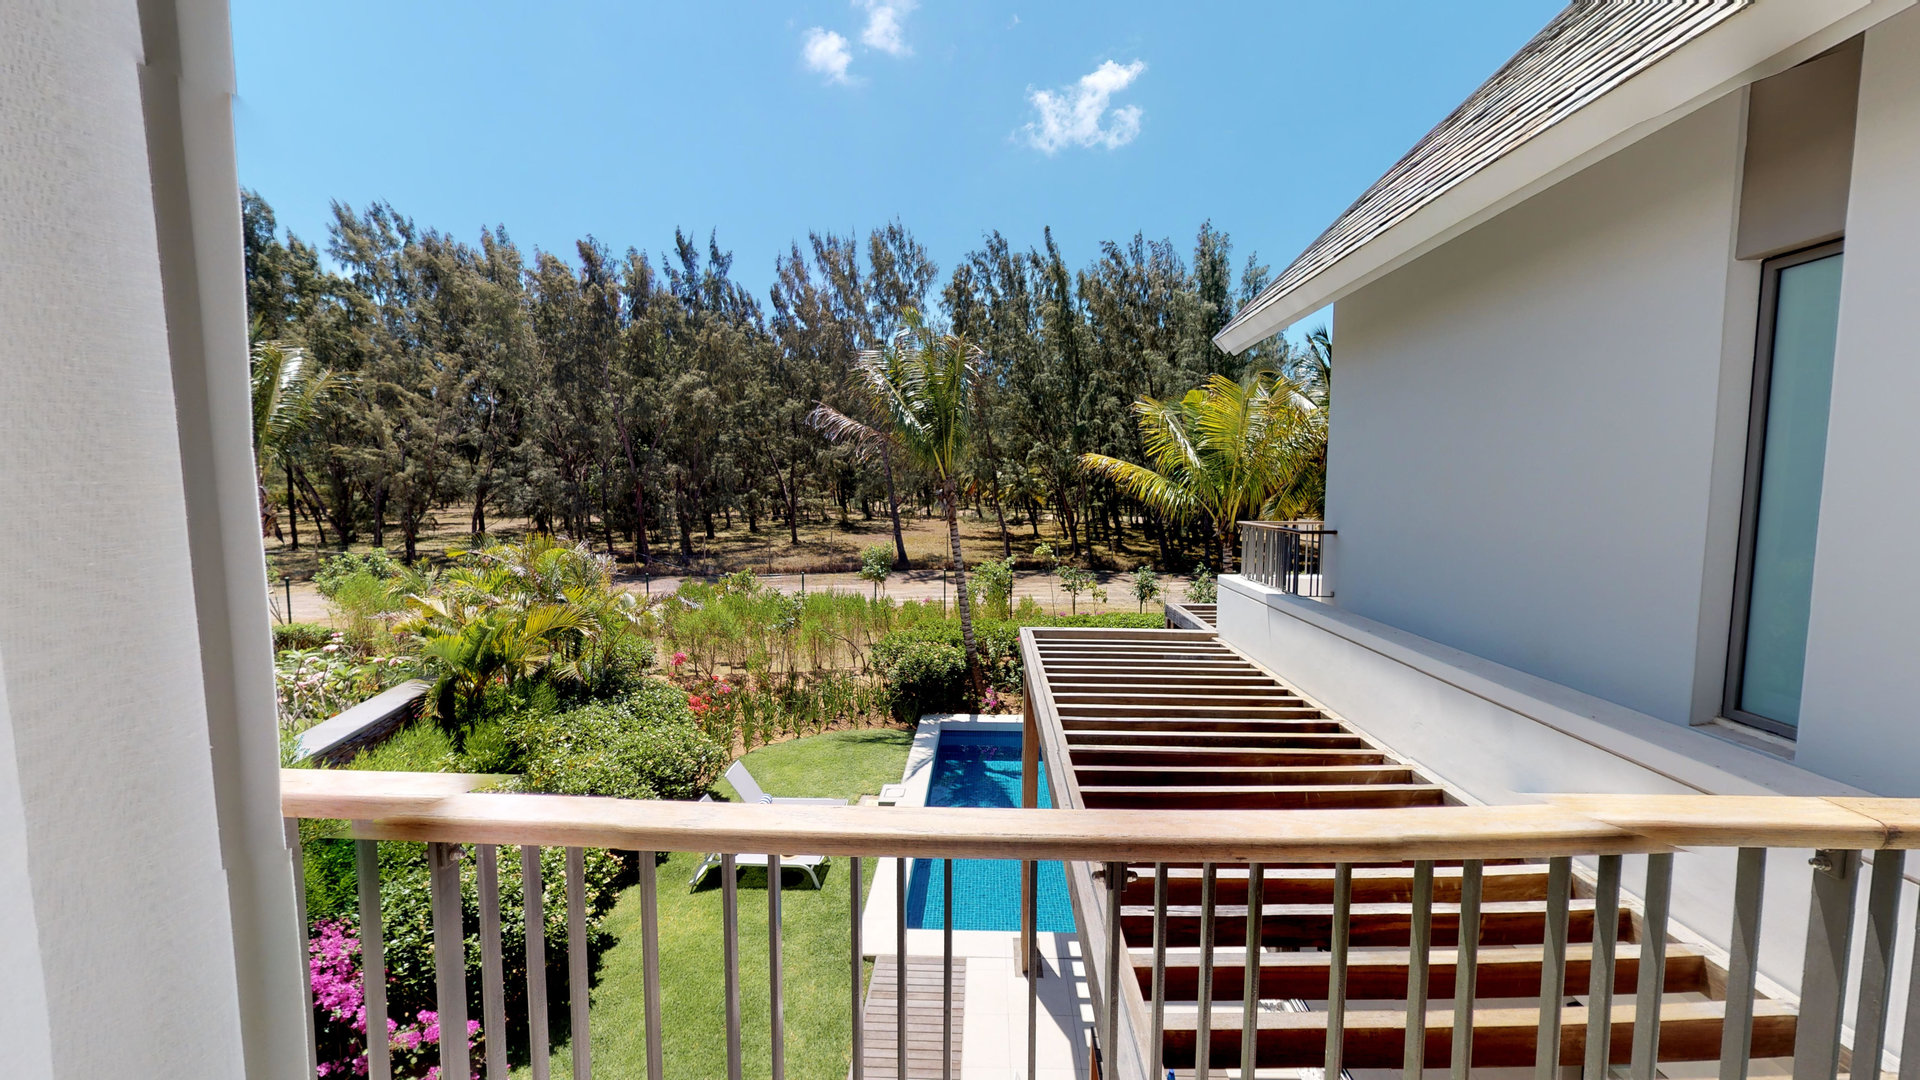 4 Bedroom House for Sale in Grand Bay